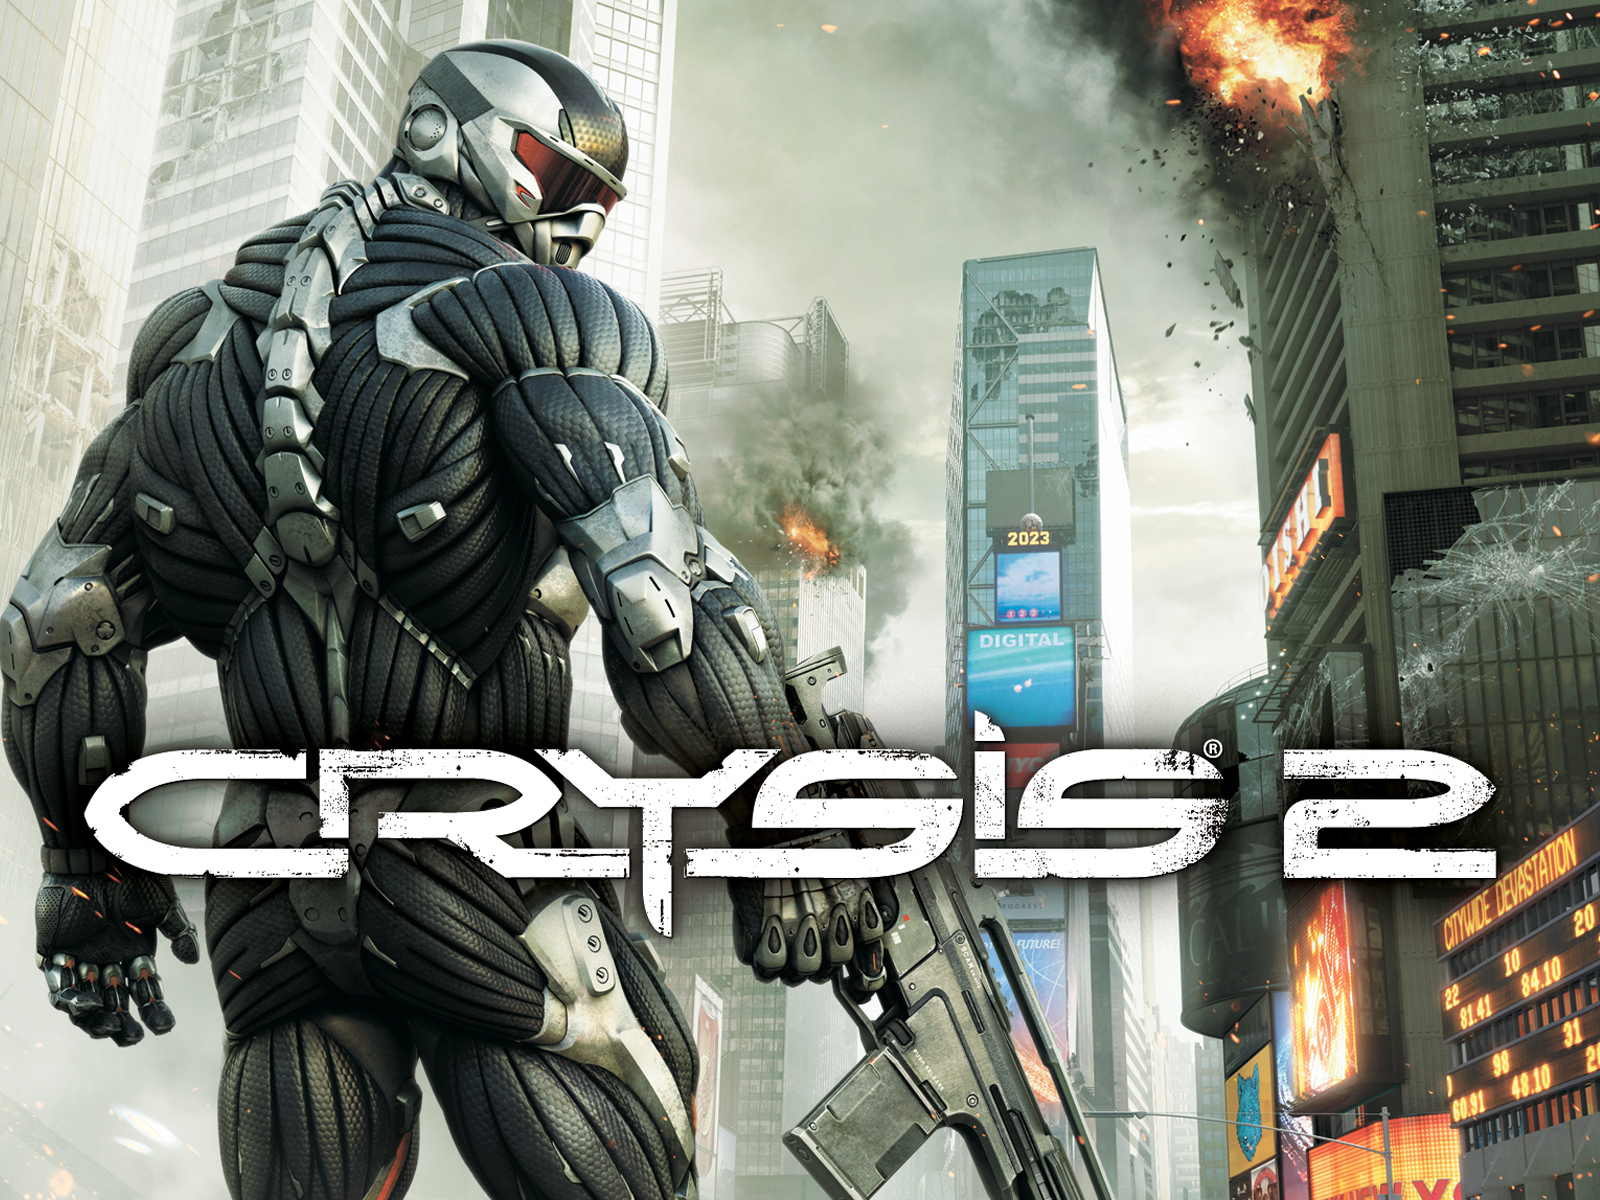 Crysis 2 Wallpaper